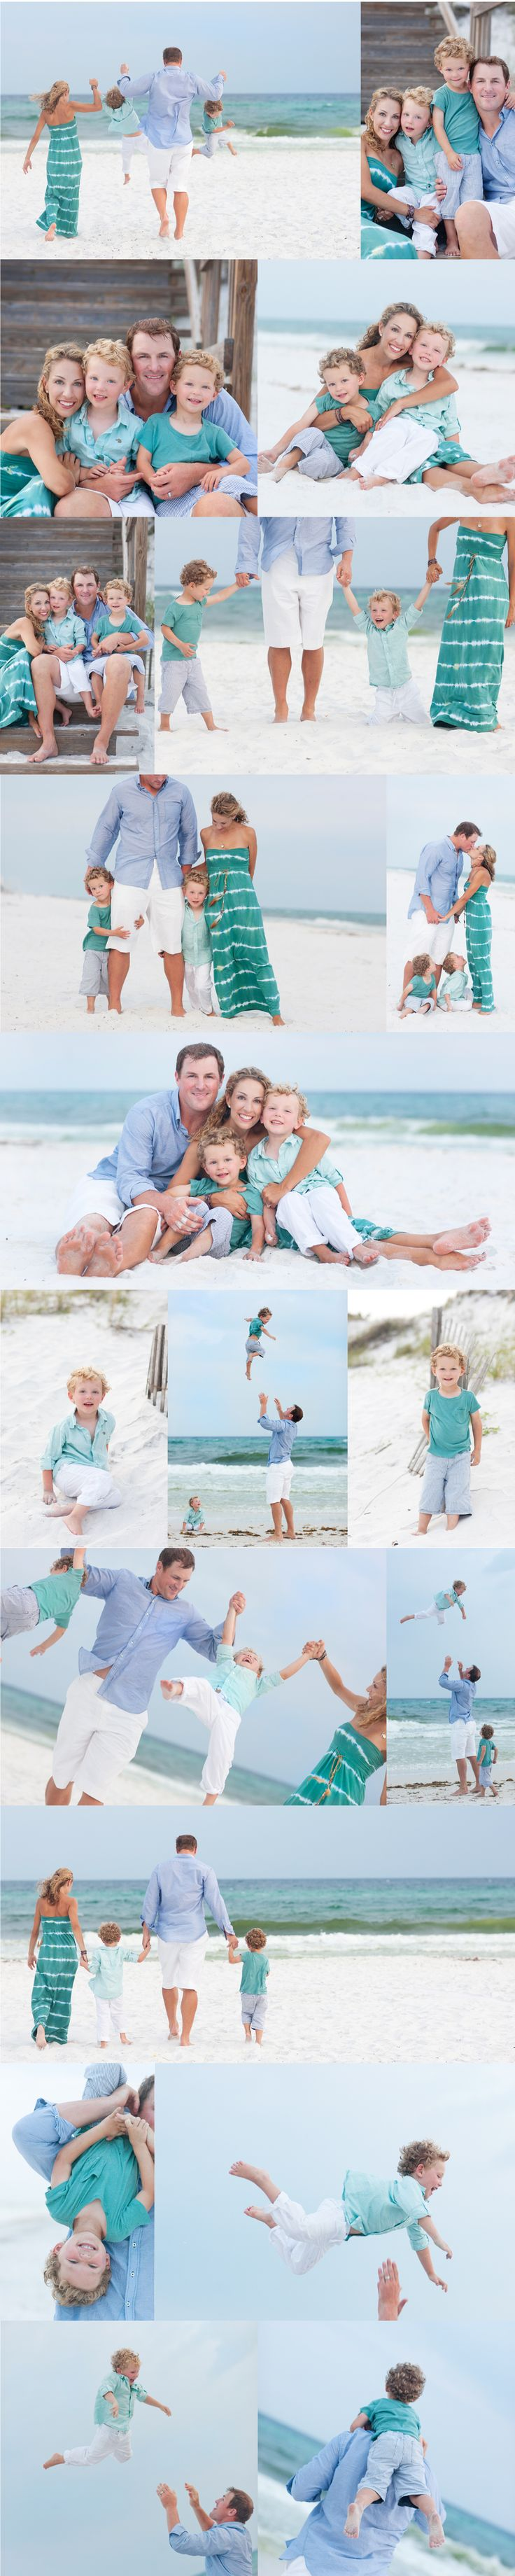 Love the different poses and the colors are pretty!: Photos Ideas, Families Pictures, Beaches Pics, Colors Schemes, Families Photos, Families Beaches, Families Pics, Beaches Pictures, Beaches Photos